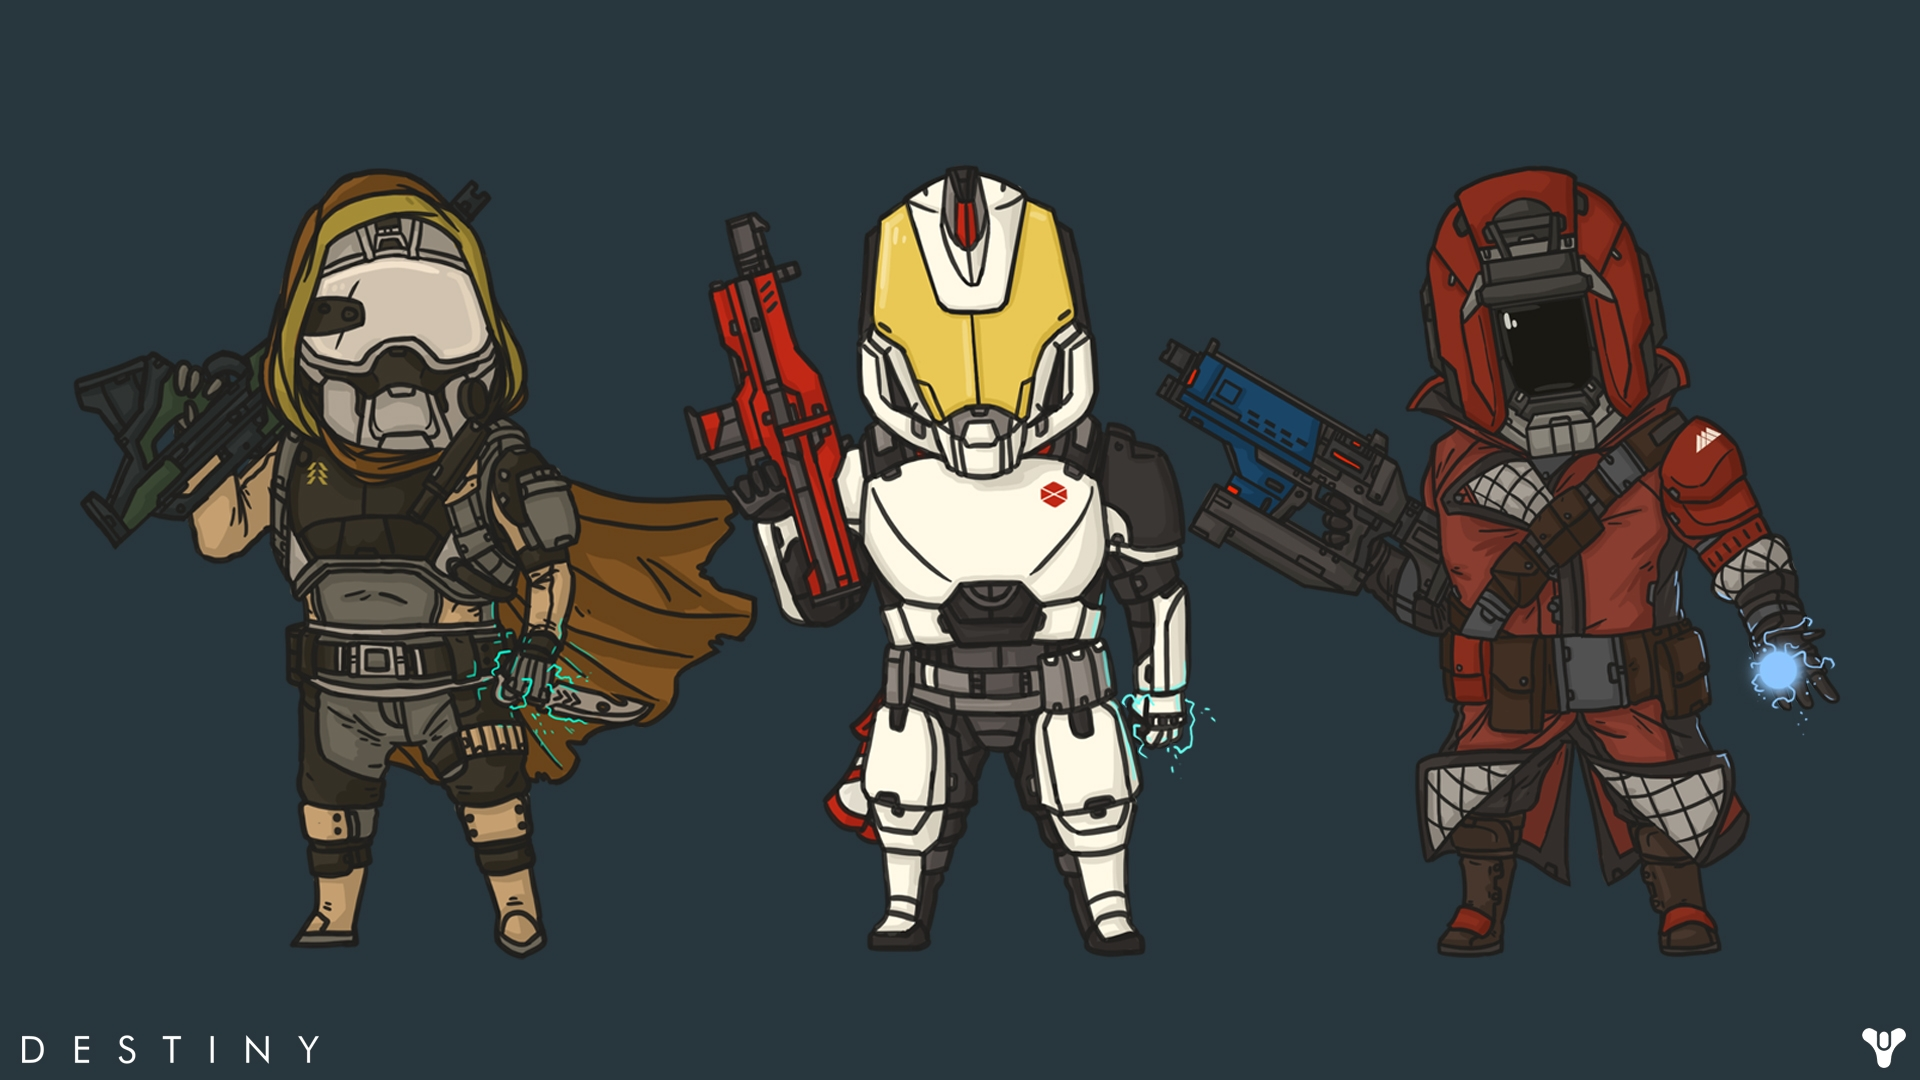 cute destiny wallpaper